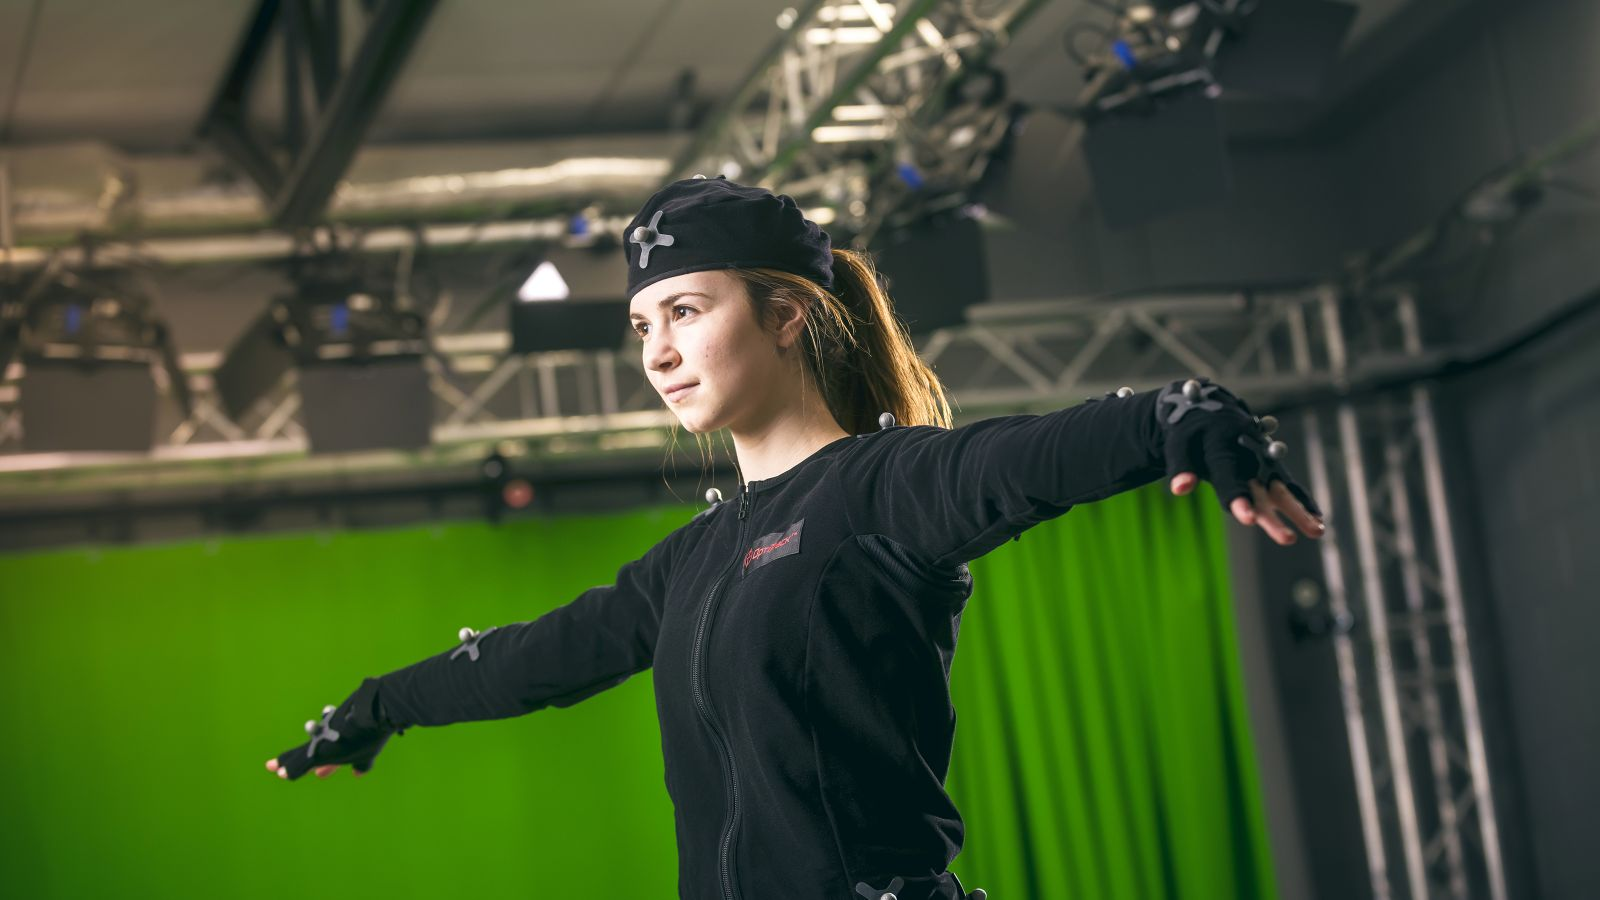 A female student in a motion capture student extends her arms in front of a green screen.